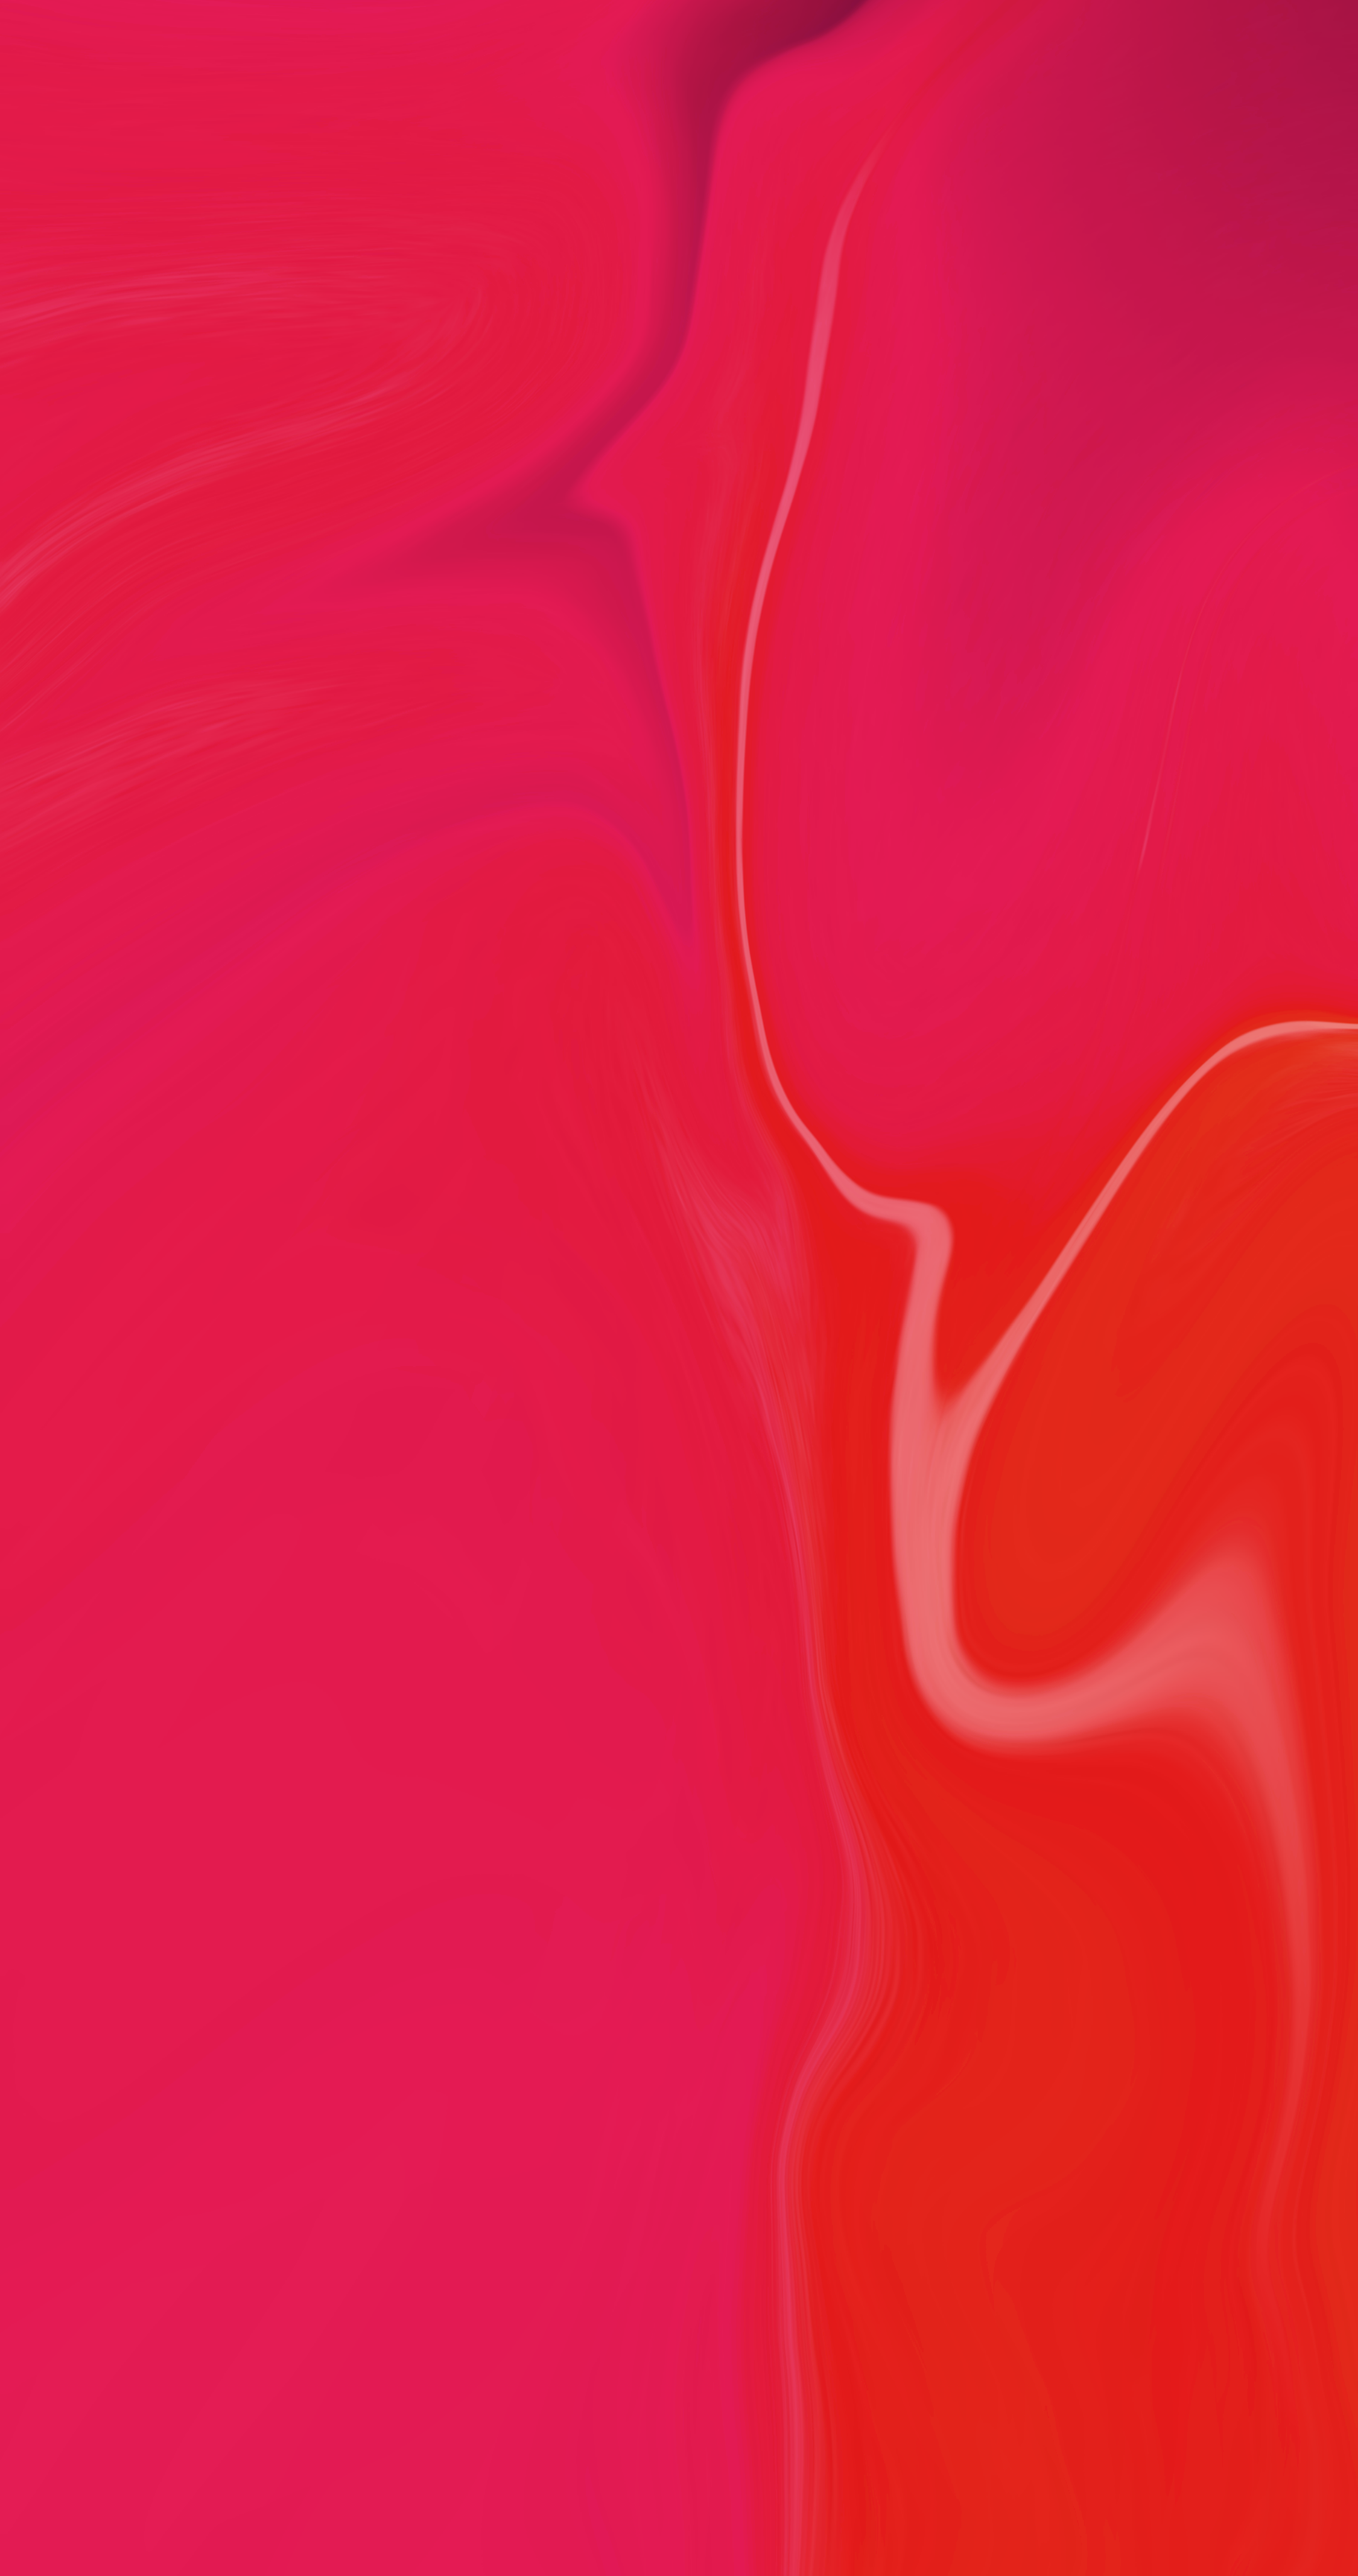 abstract iphone wallpaper idownloadblog saumil8200 Strawberry